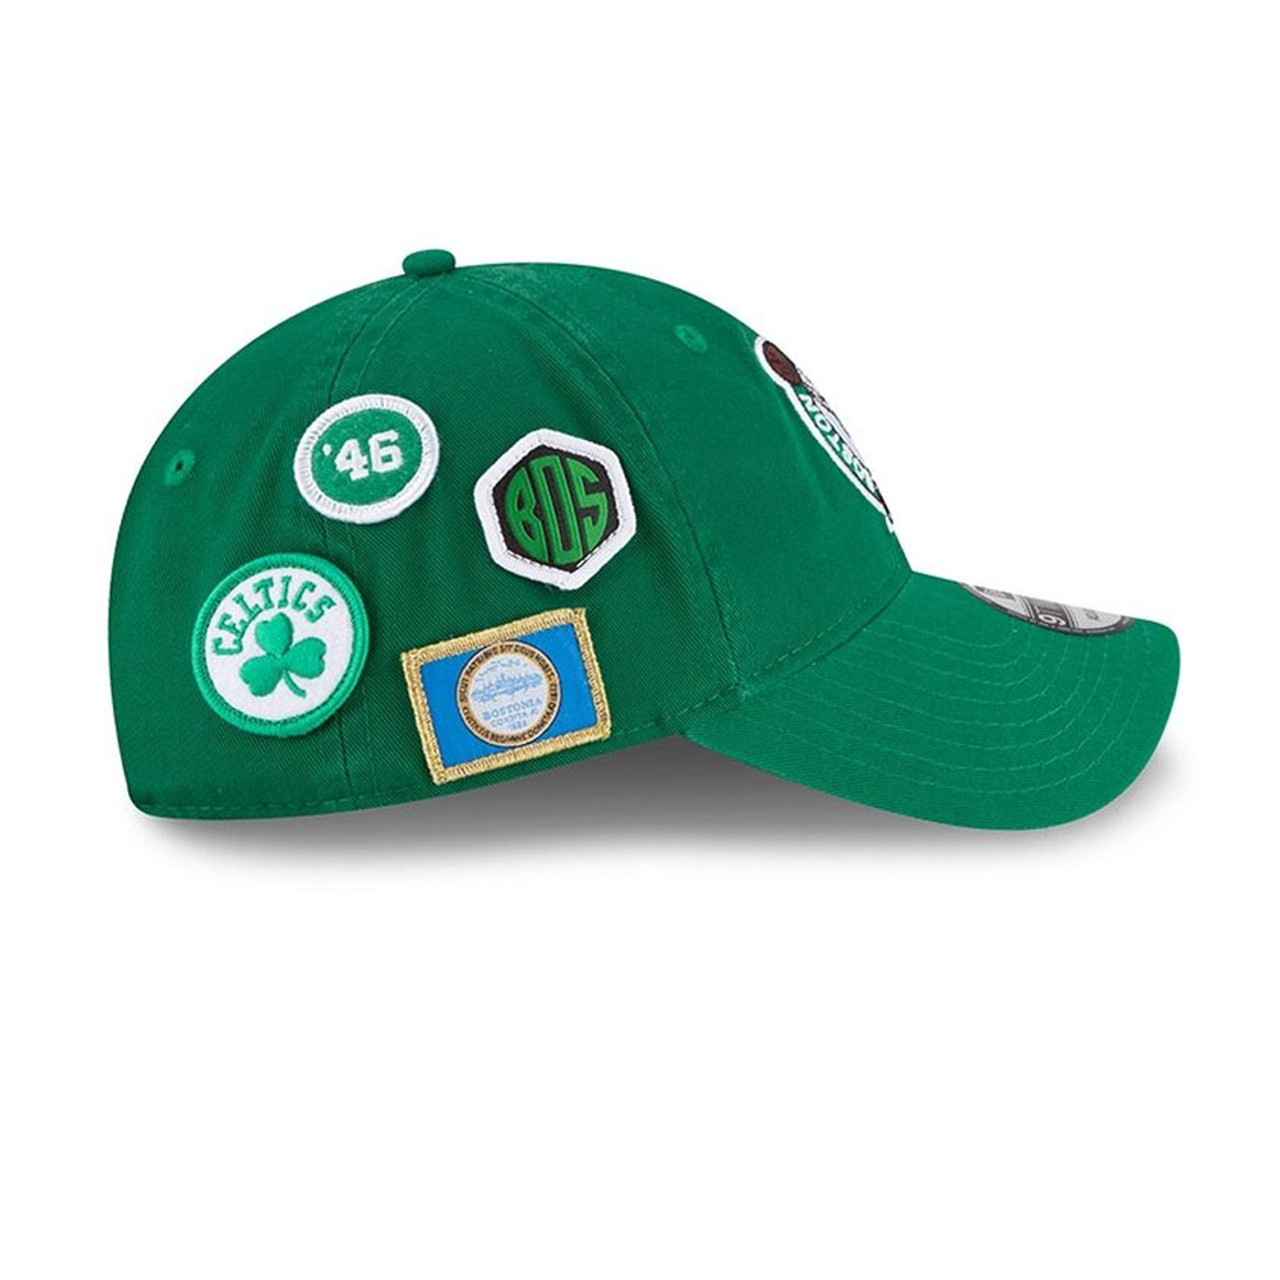 competitive price 543f9 9f306 ... NEW ERA boston celtics 9twenty adjustable NBA basketball draft cap   green  ...